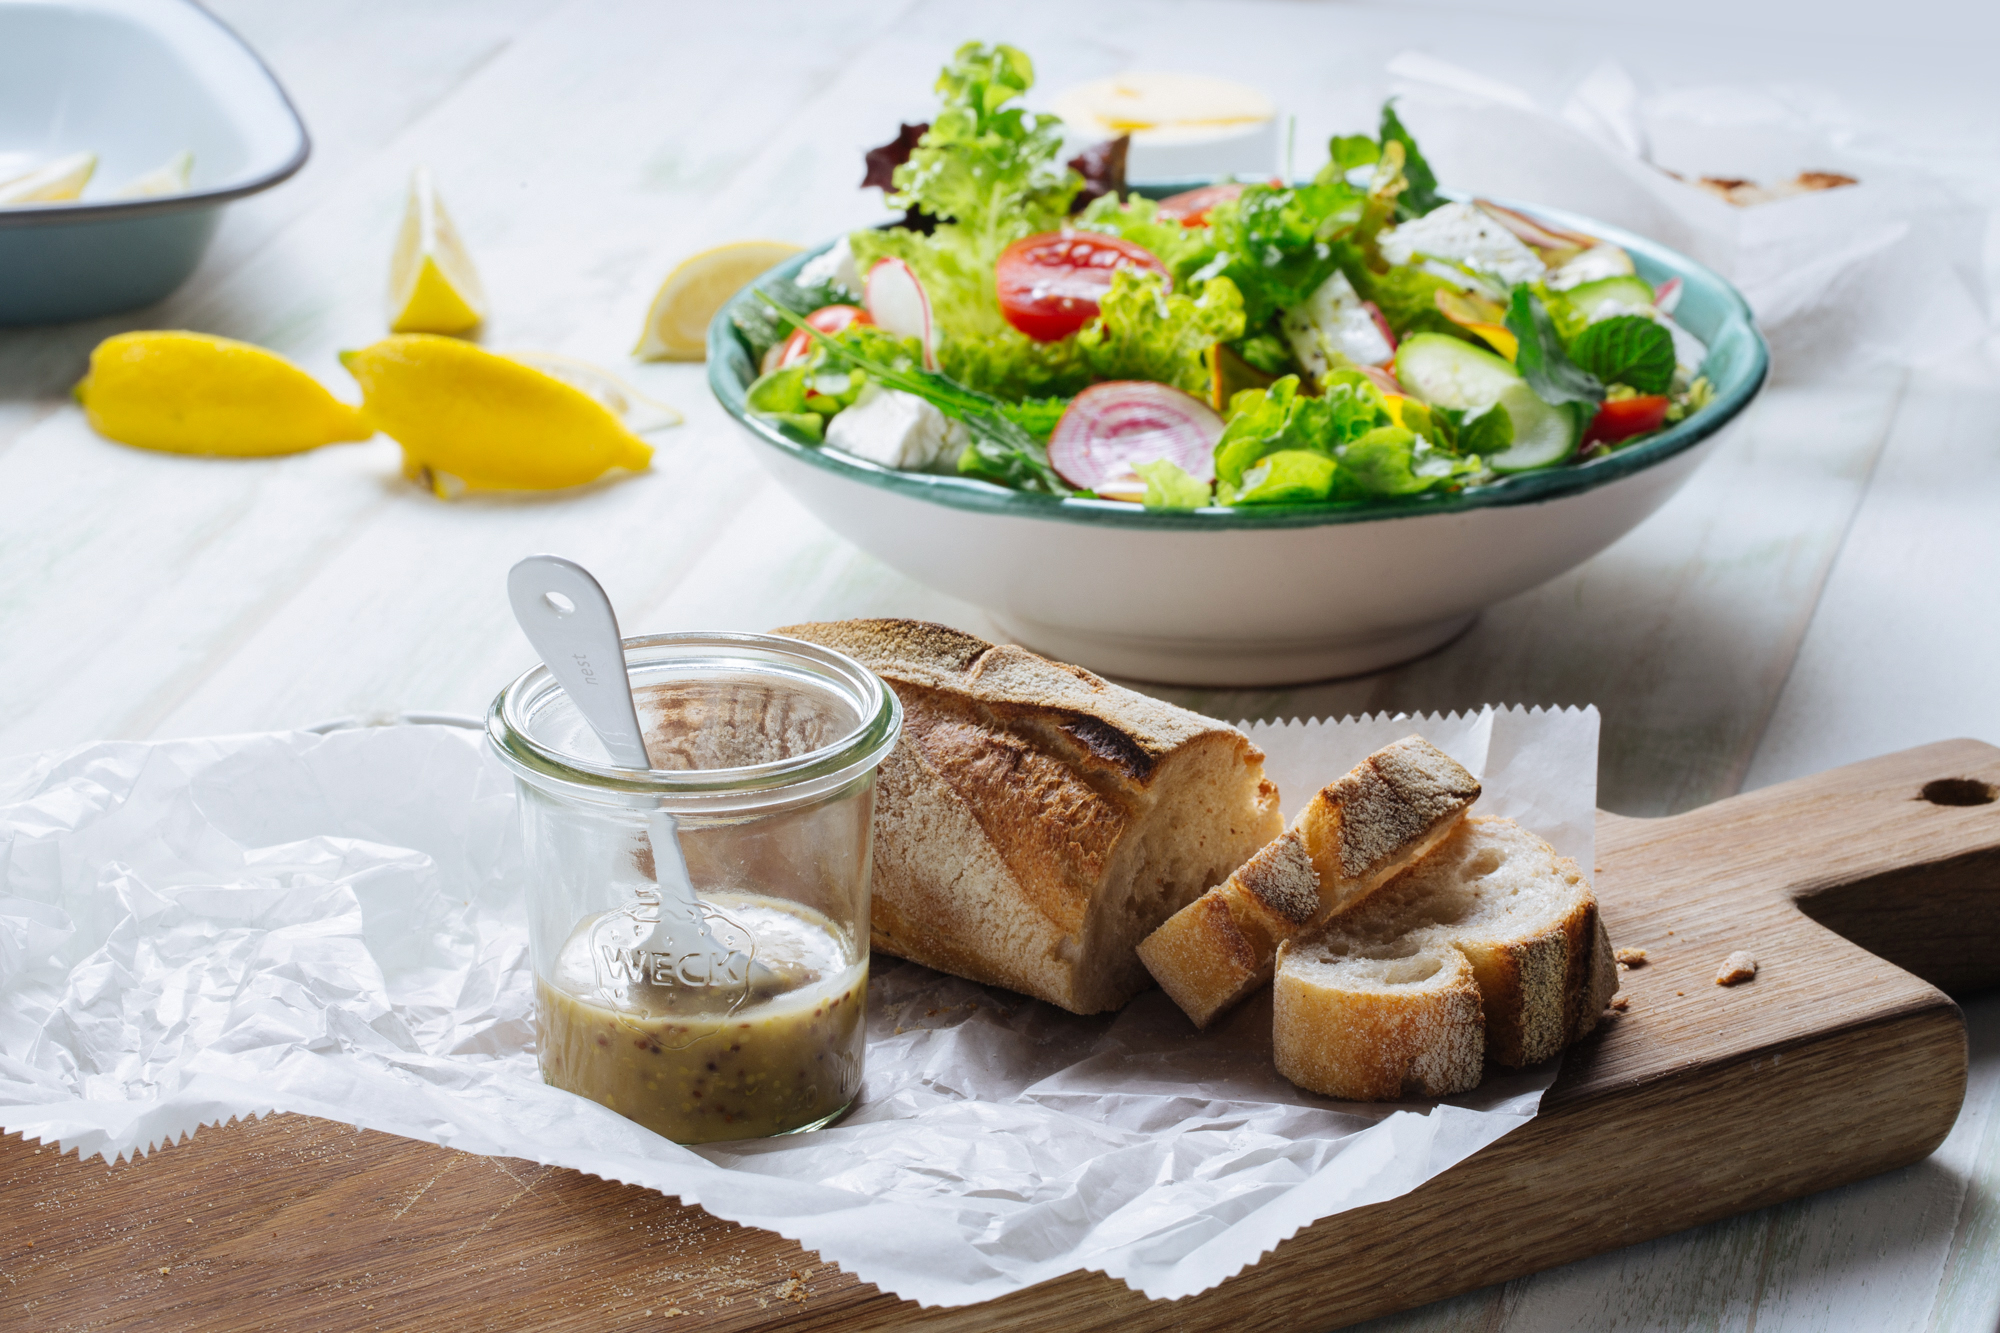 Bread and Salad